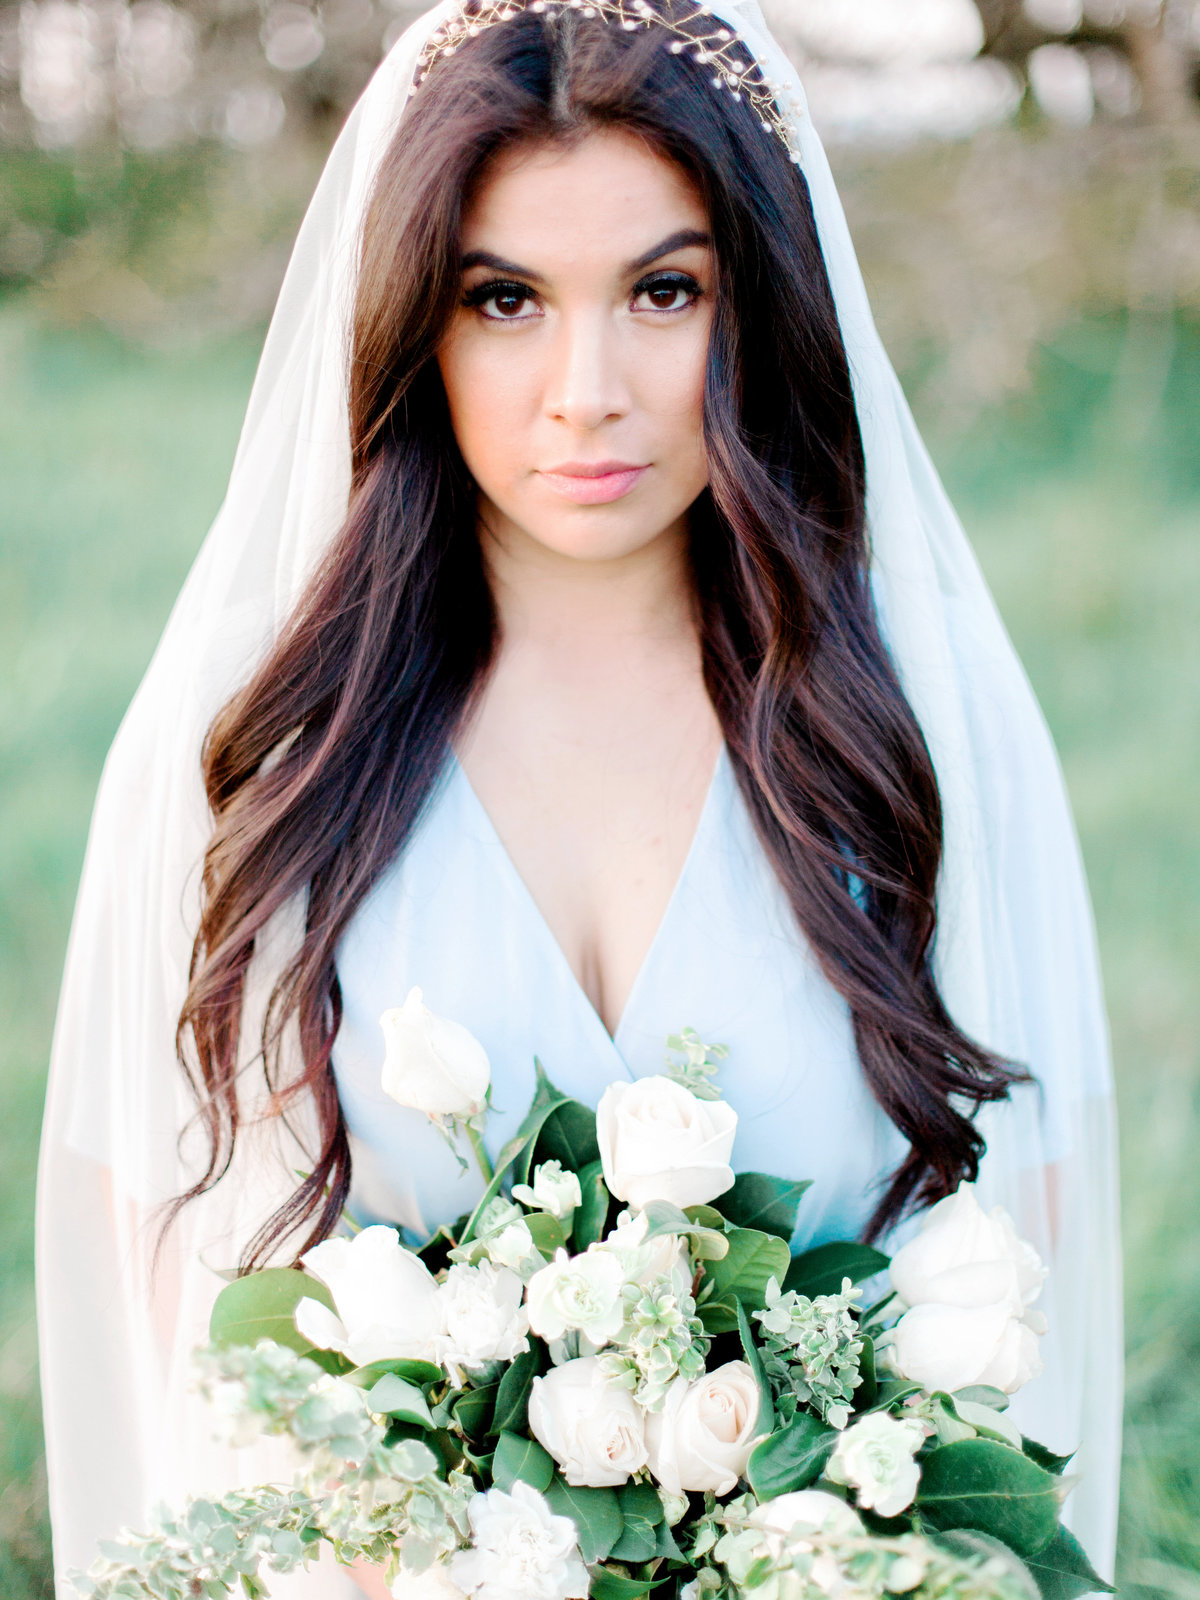 WHEN-SHE-KNEW-PHOTOGRAPHY-ADORN-MAGAZINE-ETHEREAL-BRIDAL-WEDDING-EDITORIAL-OREGON-15